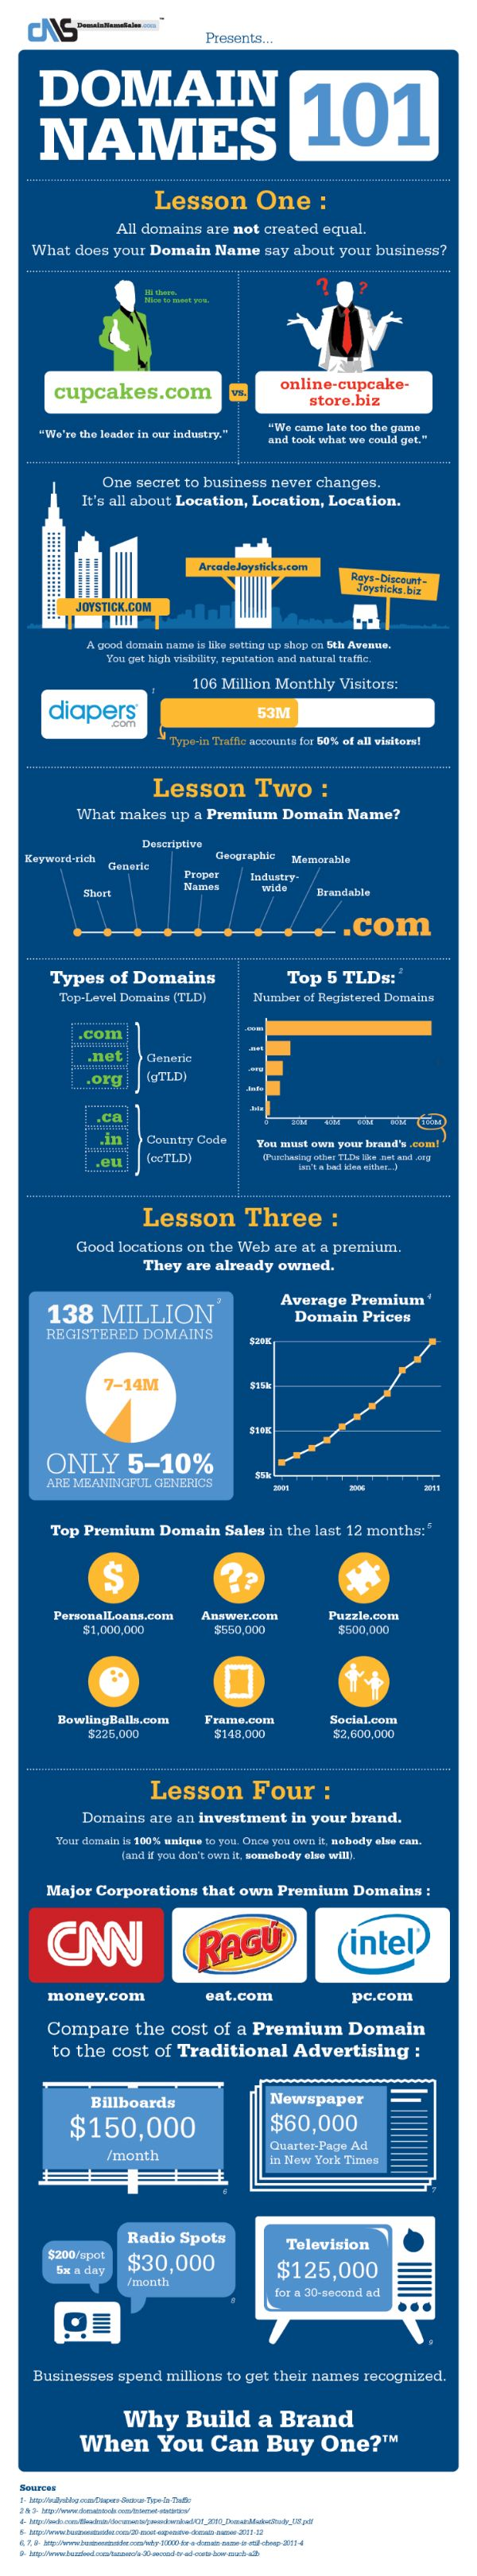 Domaines names 101 #ebusiness #infographic